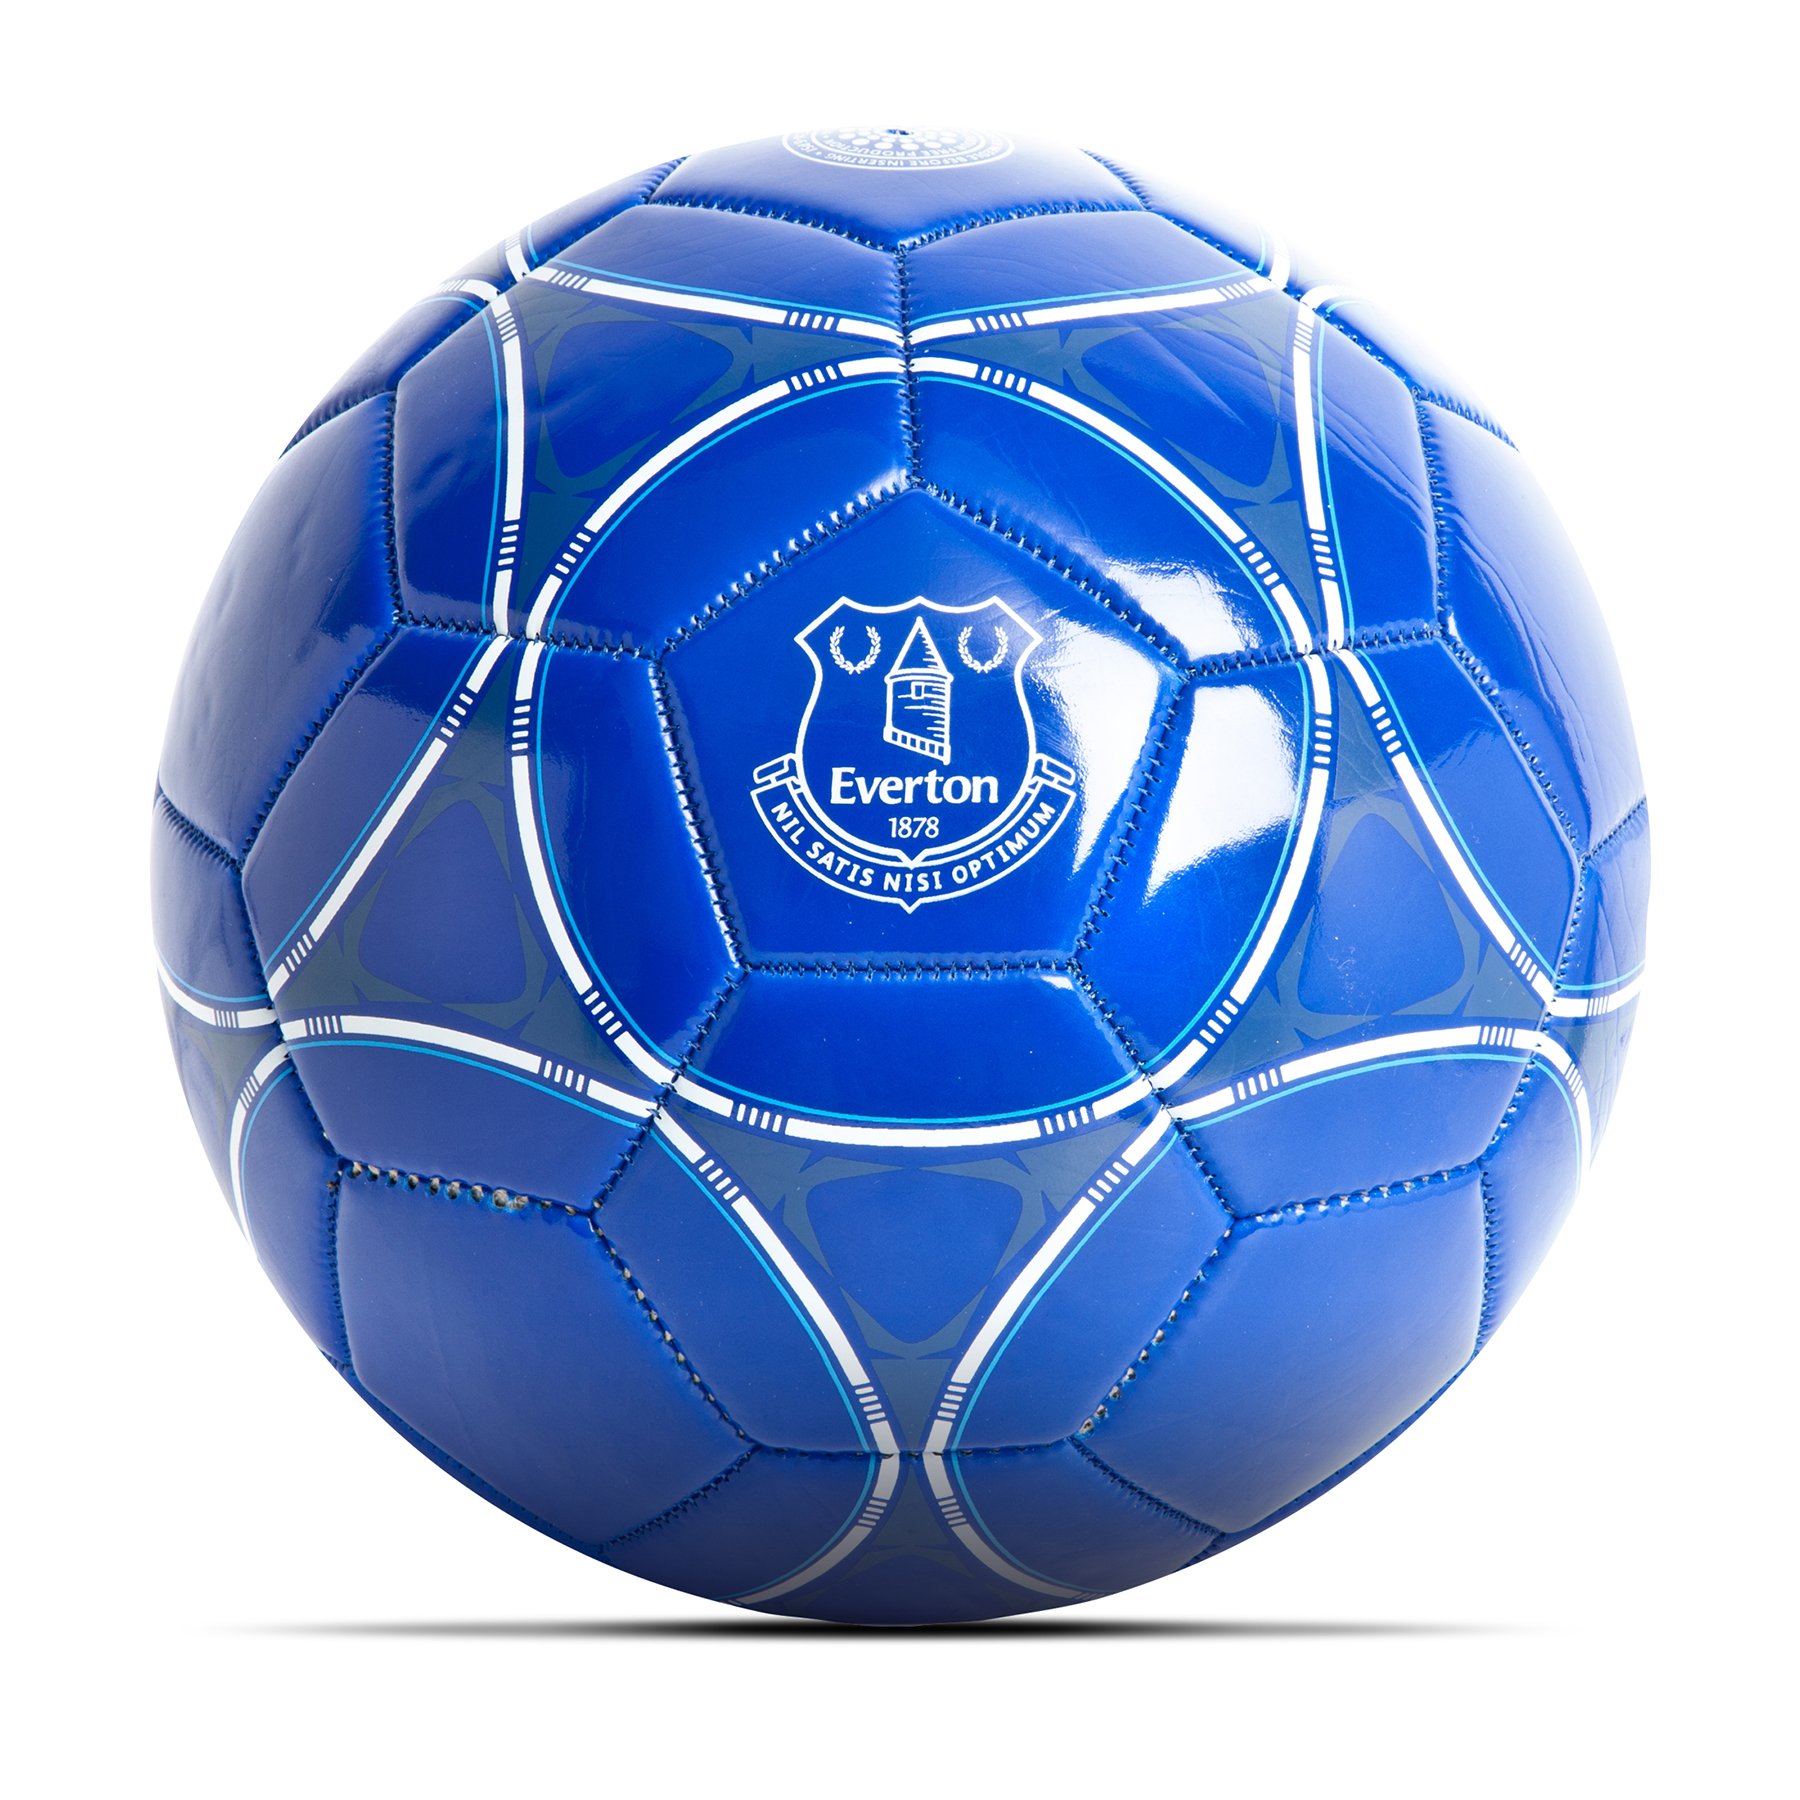 Everton Size 5 Football - Everton Blue